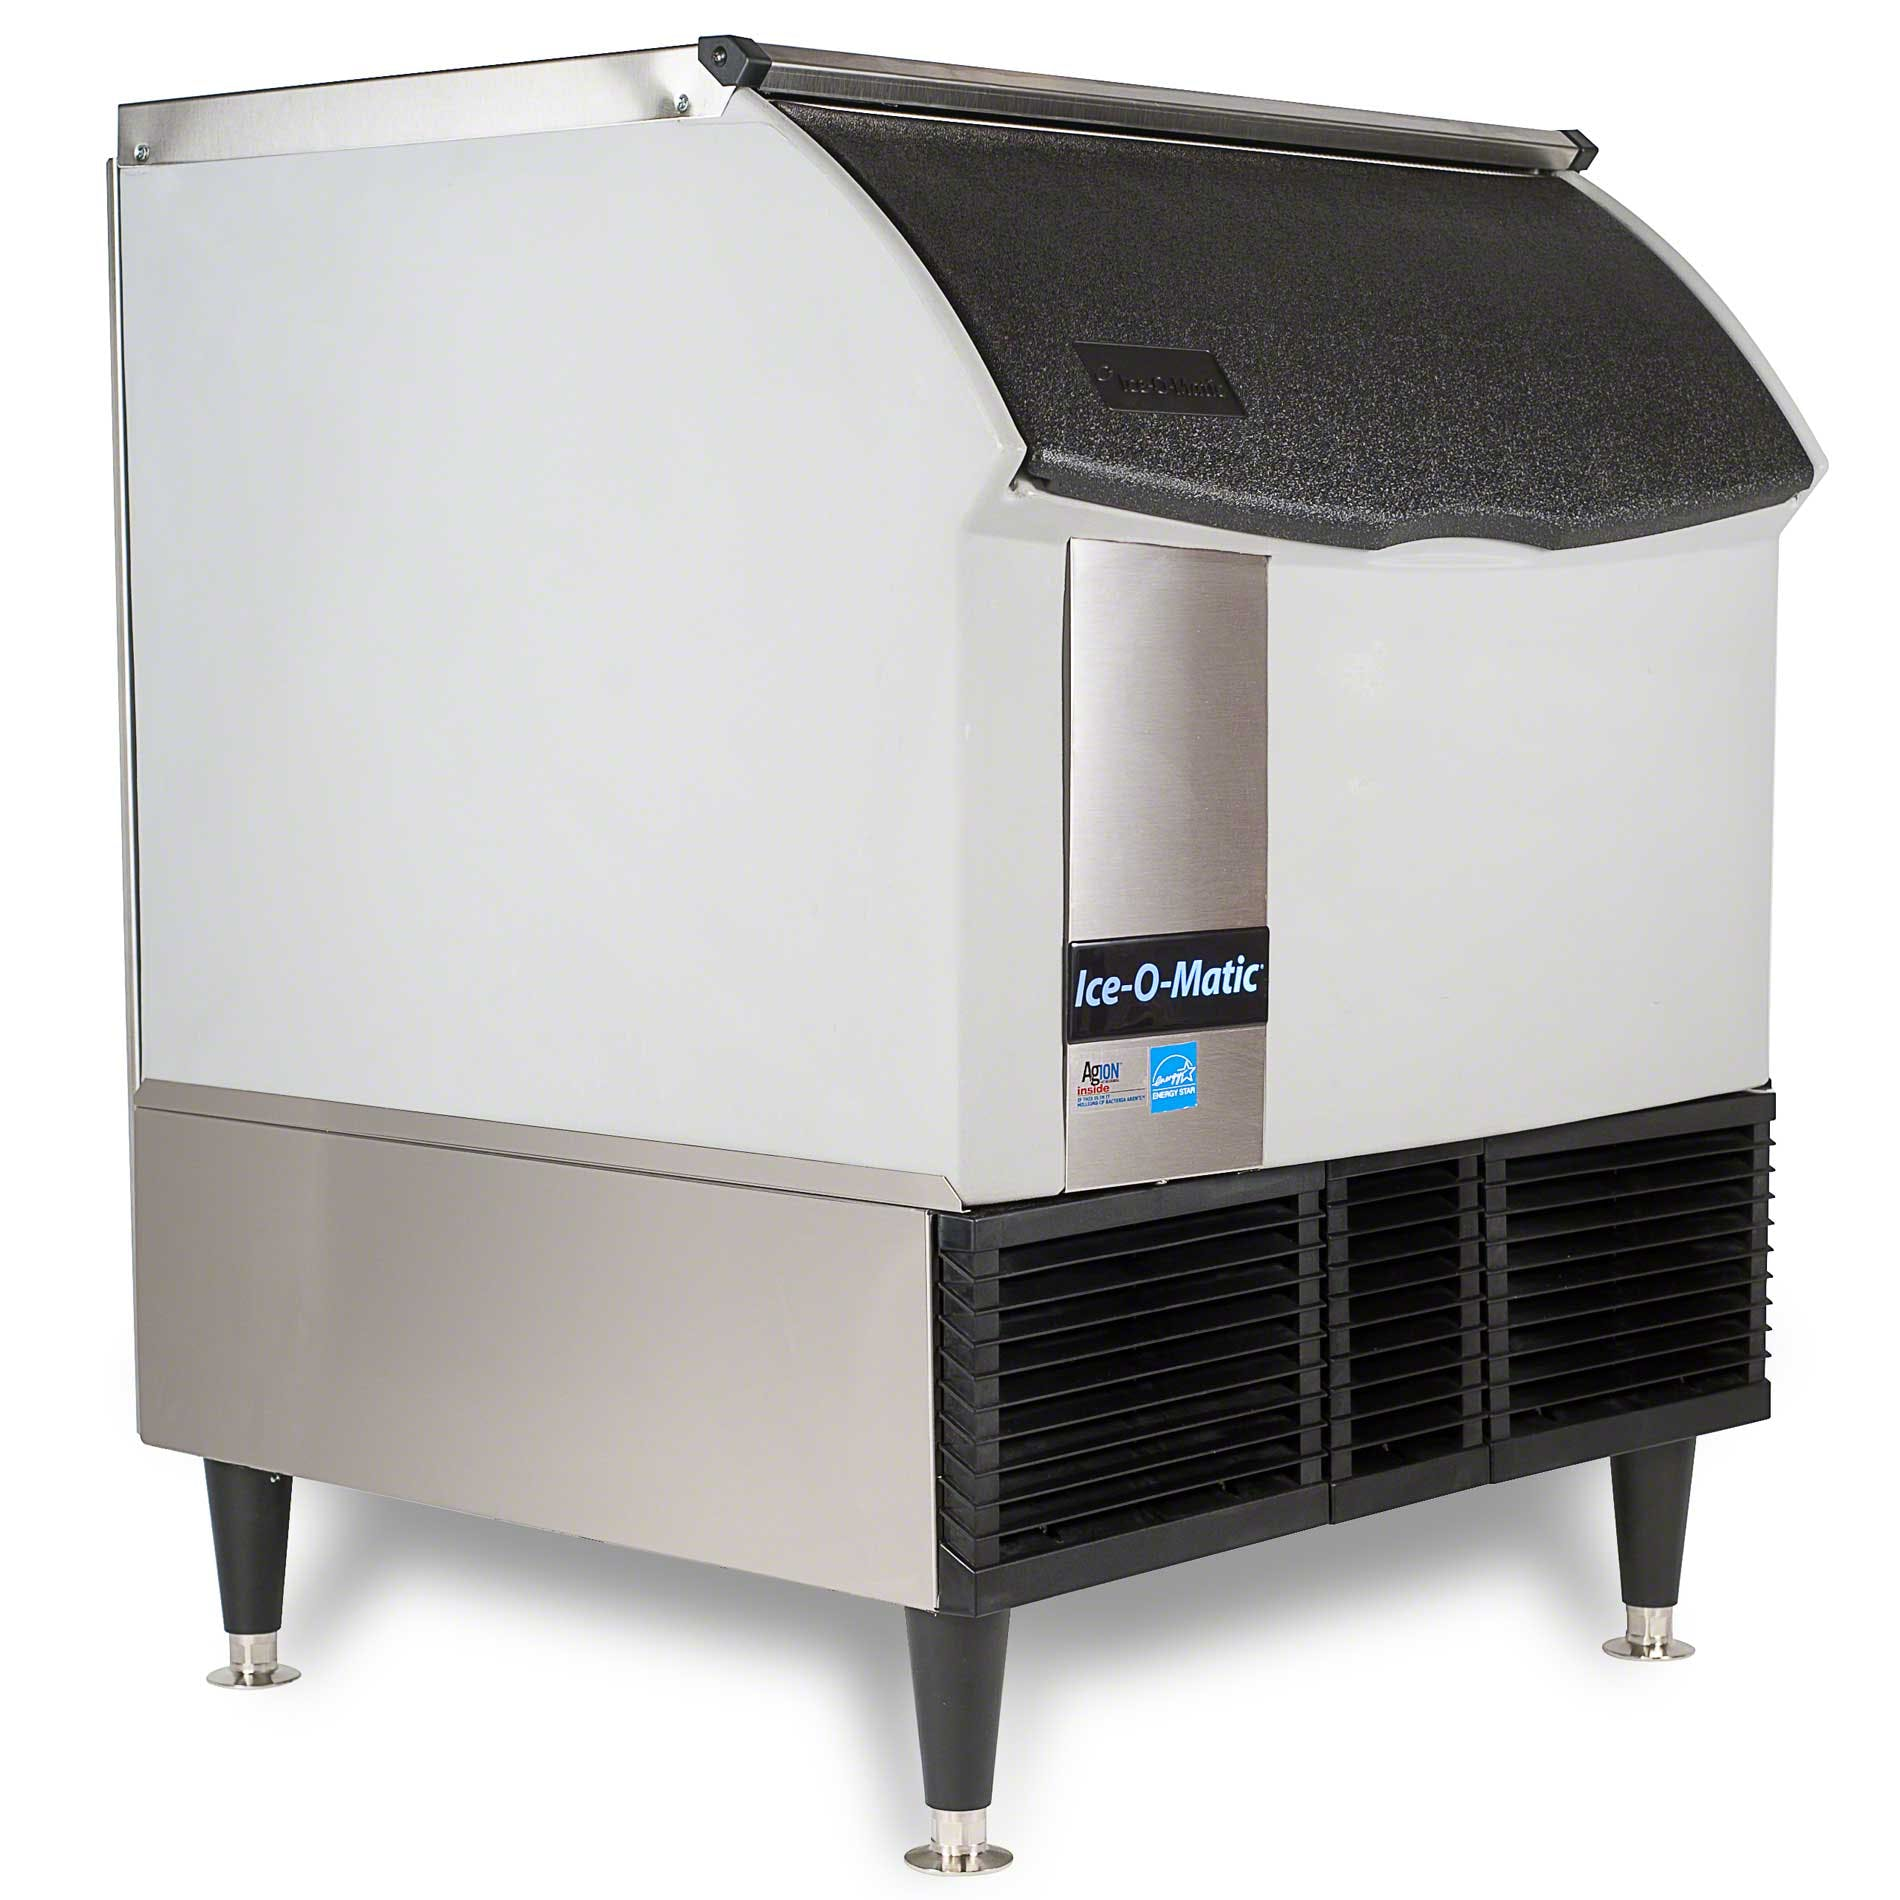 Ice-O-Matic - ICEU300FA 309 lb Self-Contained Full Cube Ice Machine Ice machine sold by Food Service Warehouse